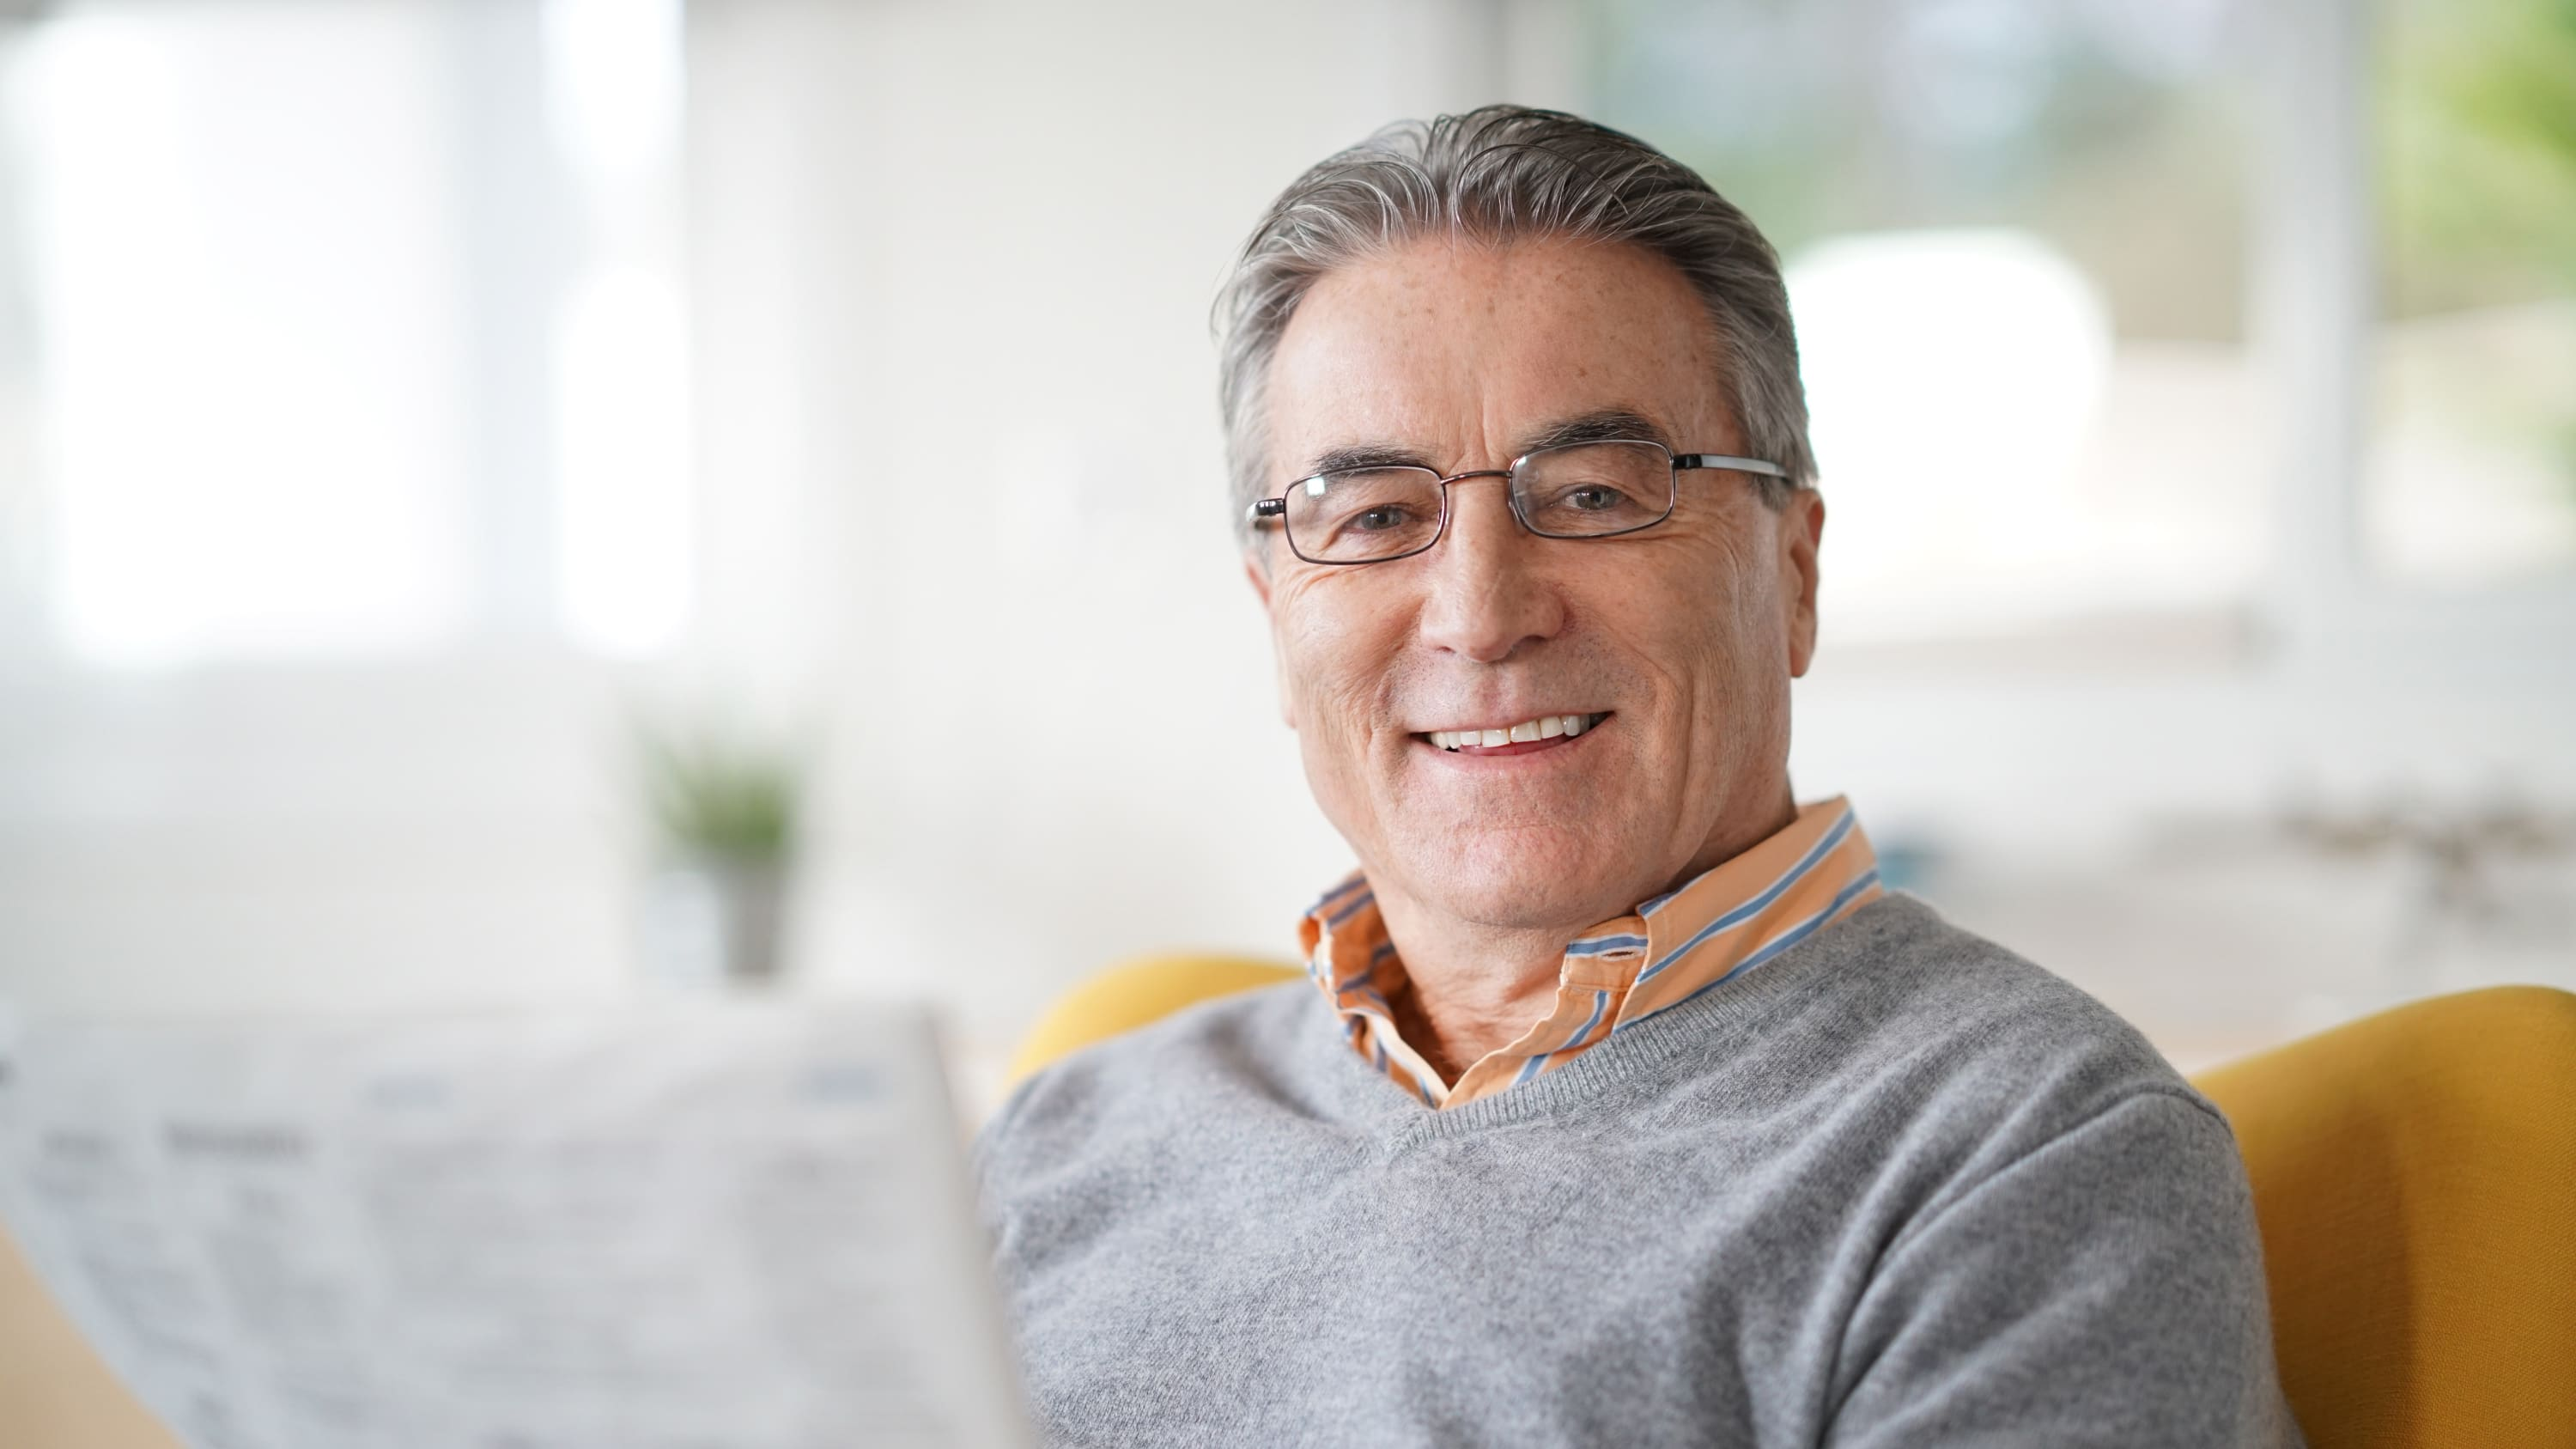 A senior man with glasses is relaxing with a newspaper and  may be reading about interventional oncology treatment.